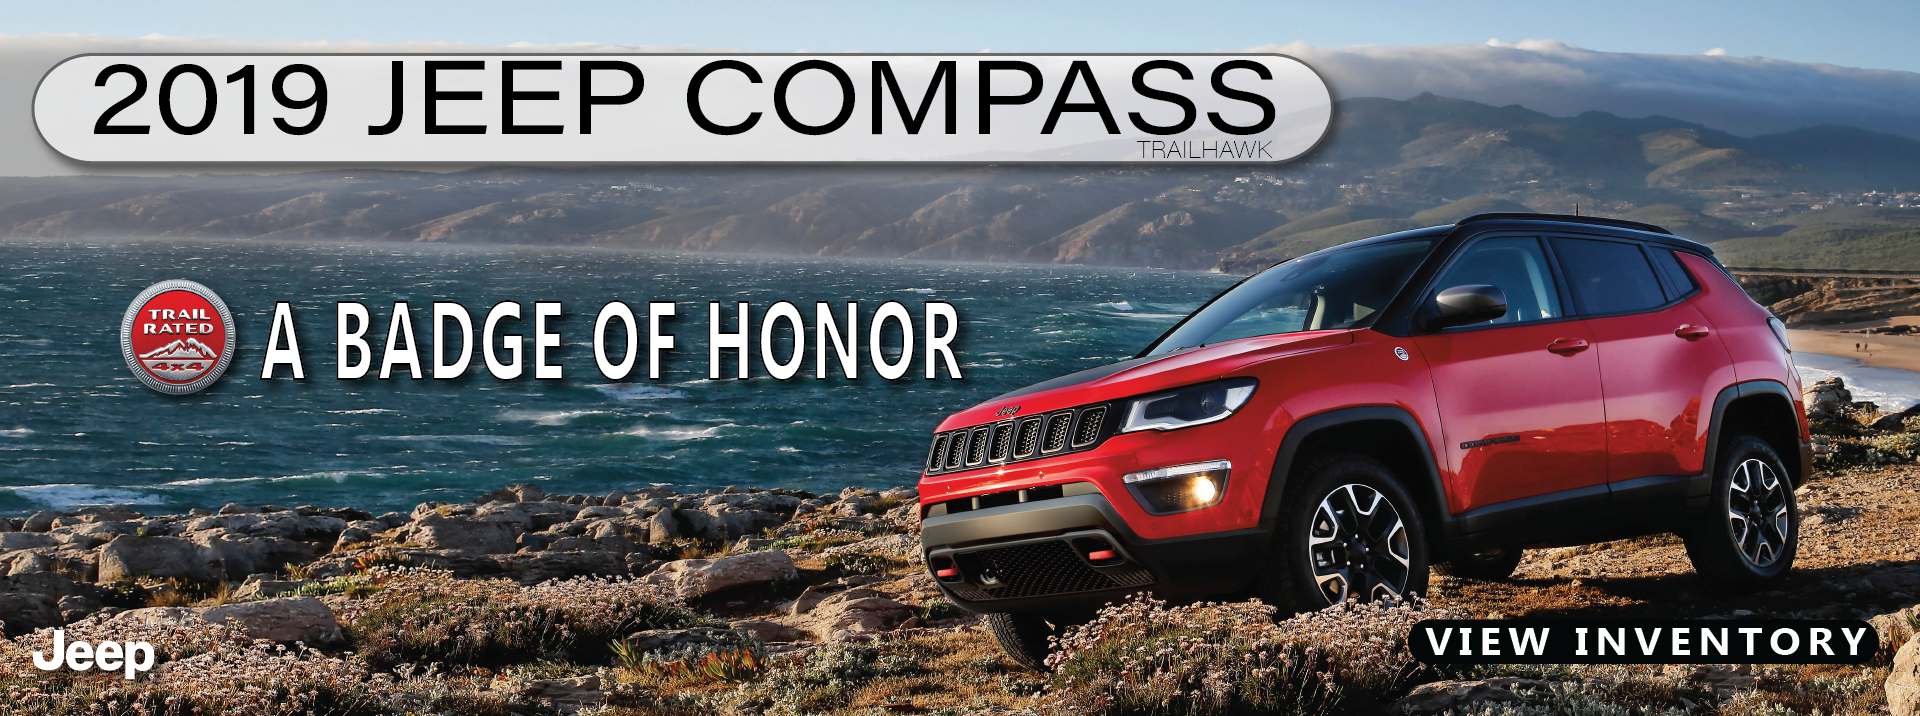 2019 Jeep Compass Badge of Honor Special in Ennis at Frank Kent CDJR